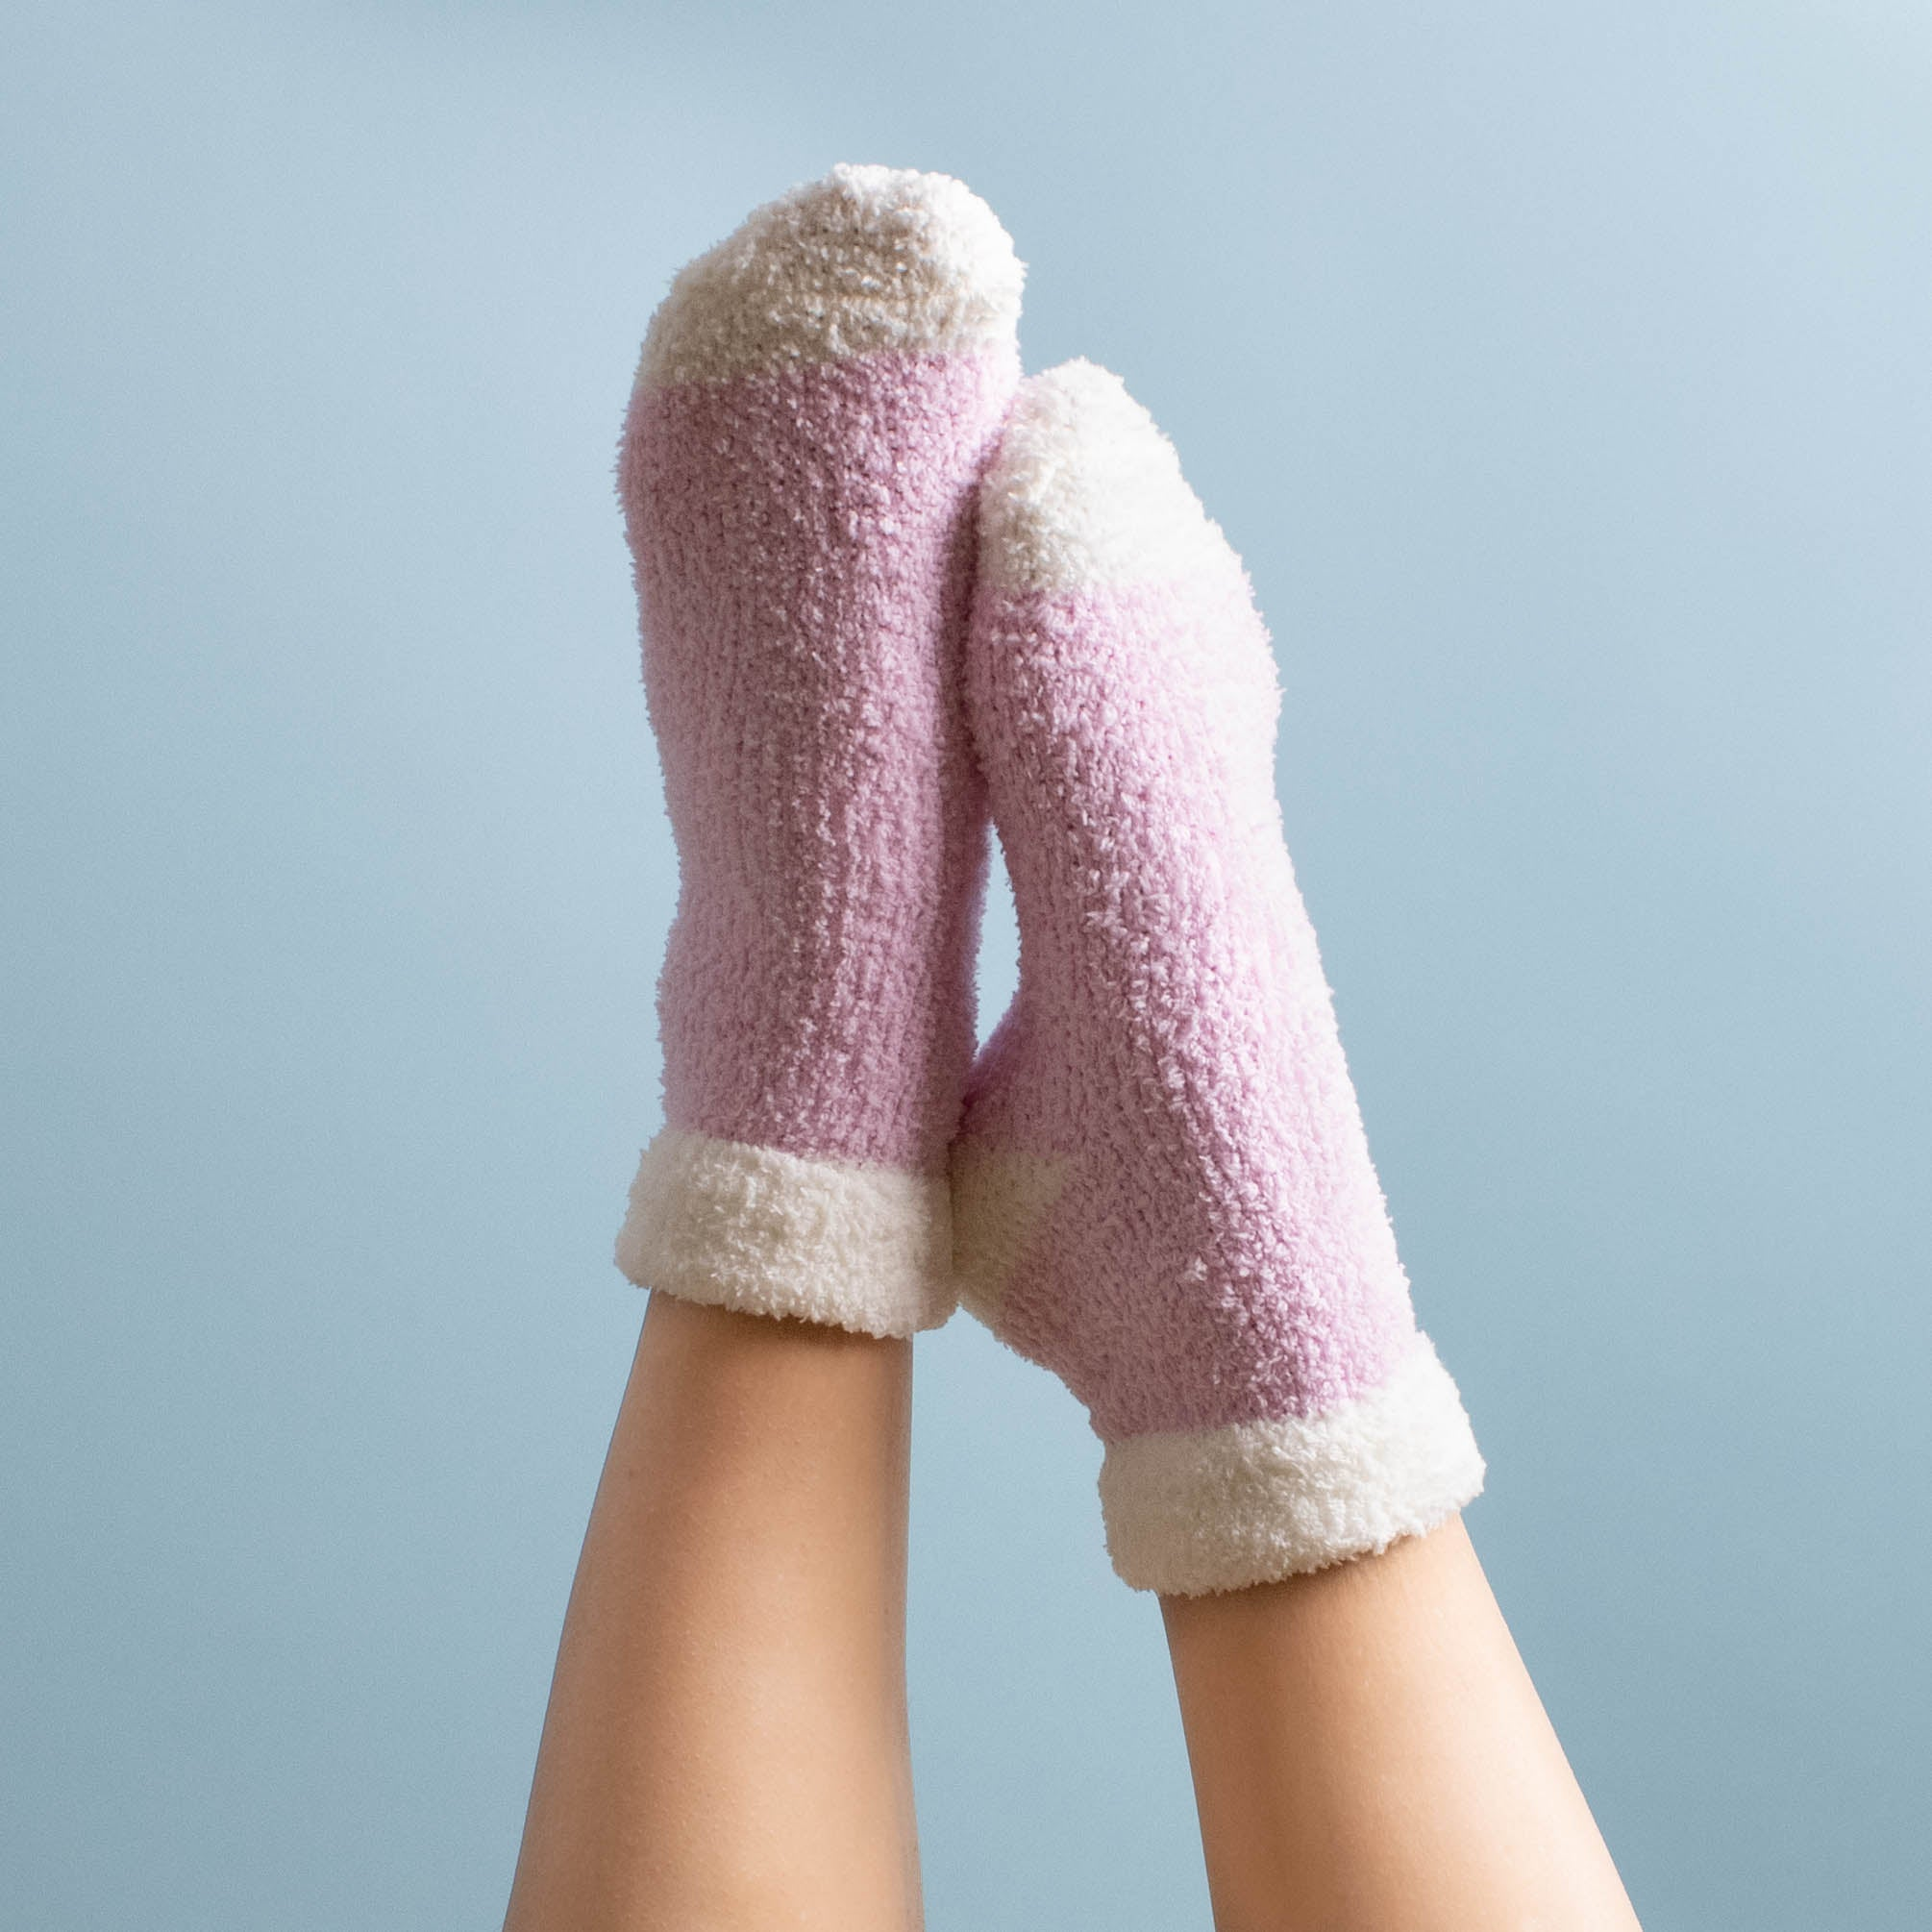 cozy slipper sock